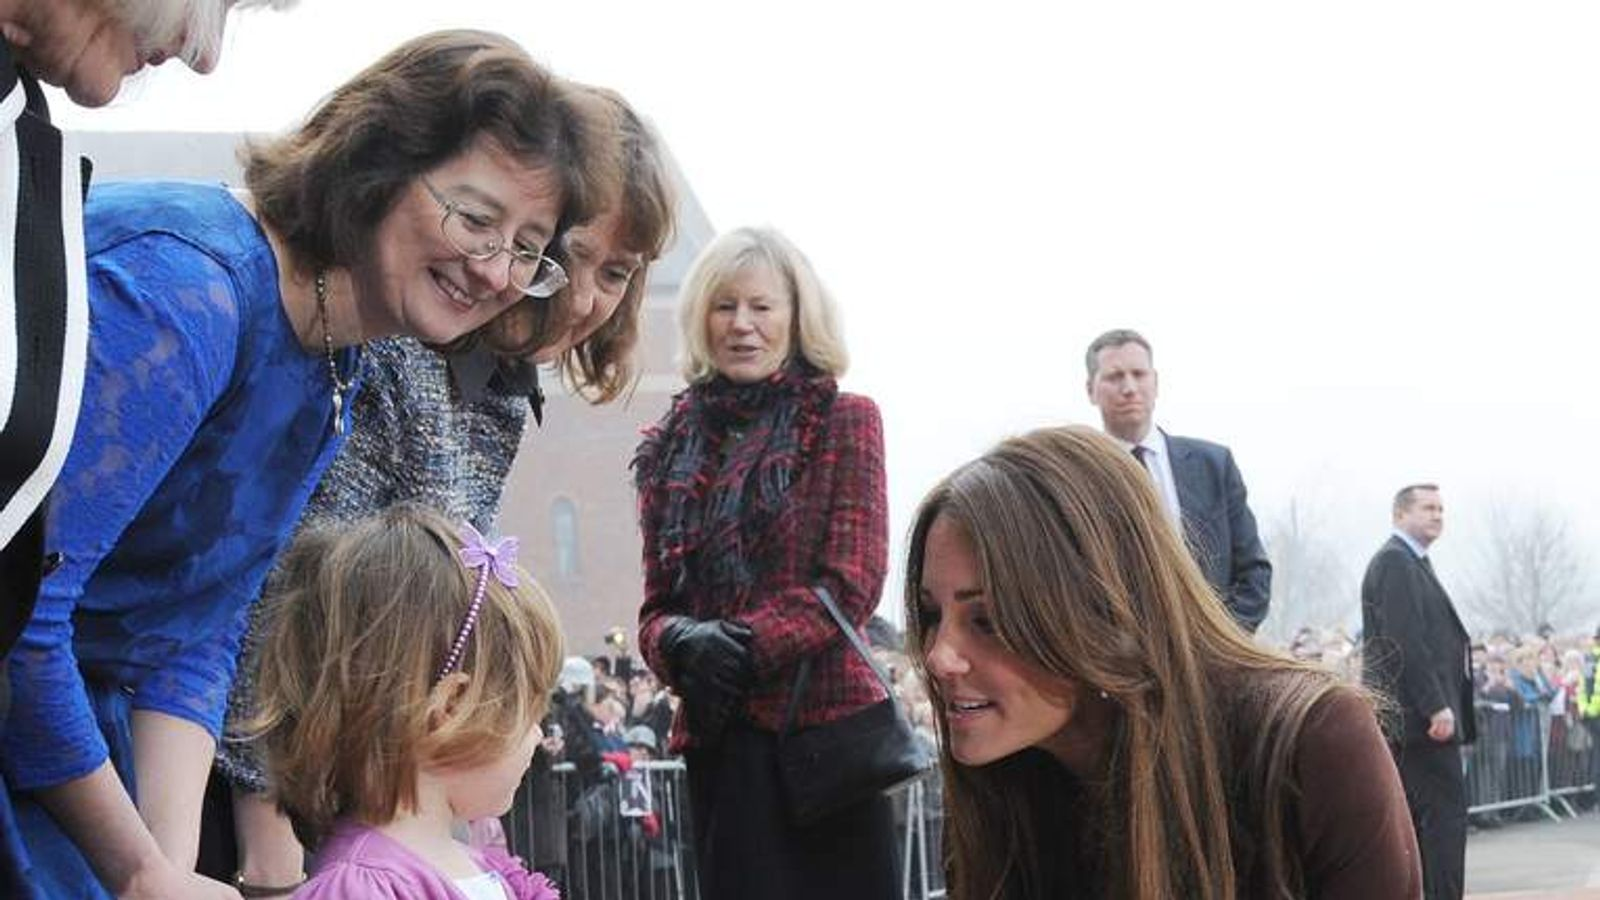 Kate of a Royal visit to Grimsby